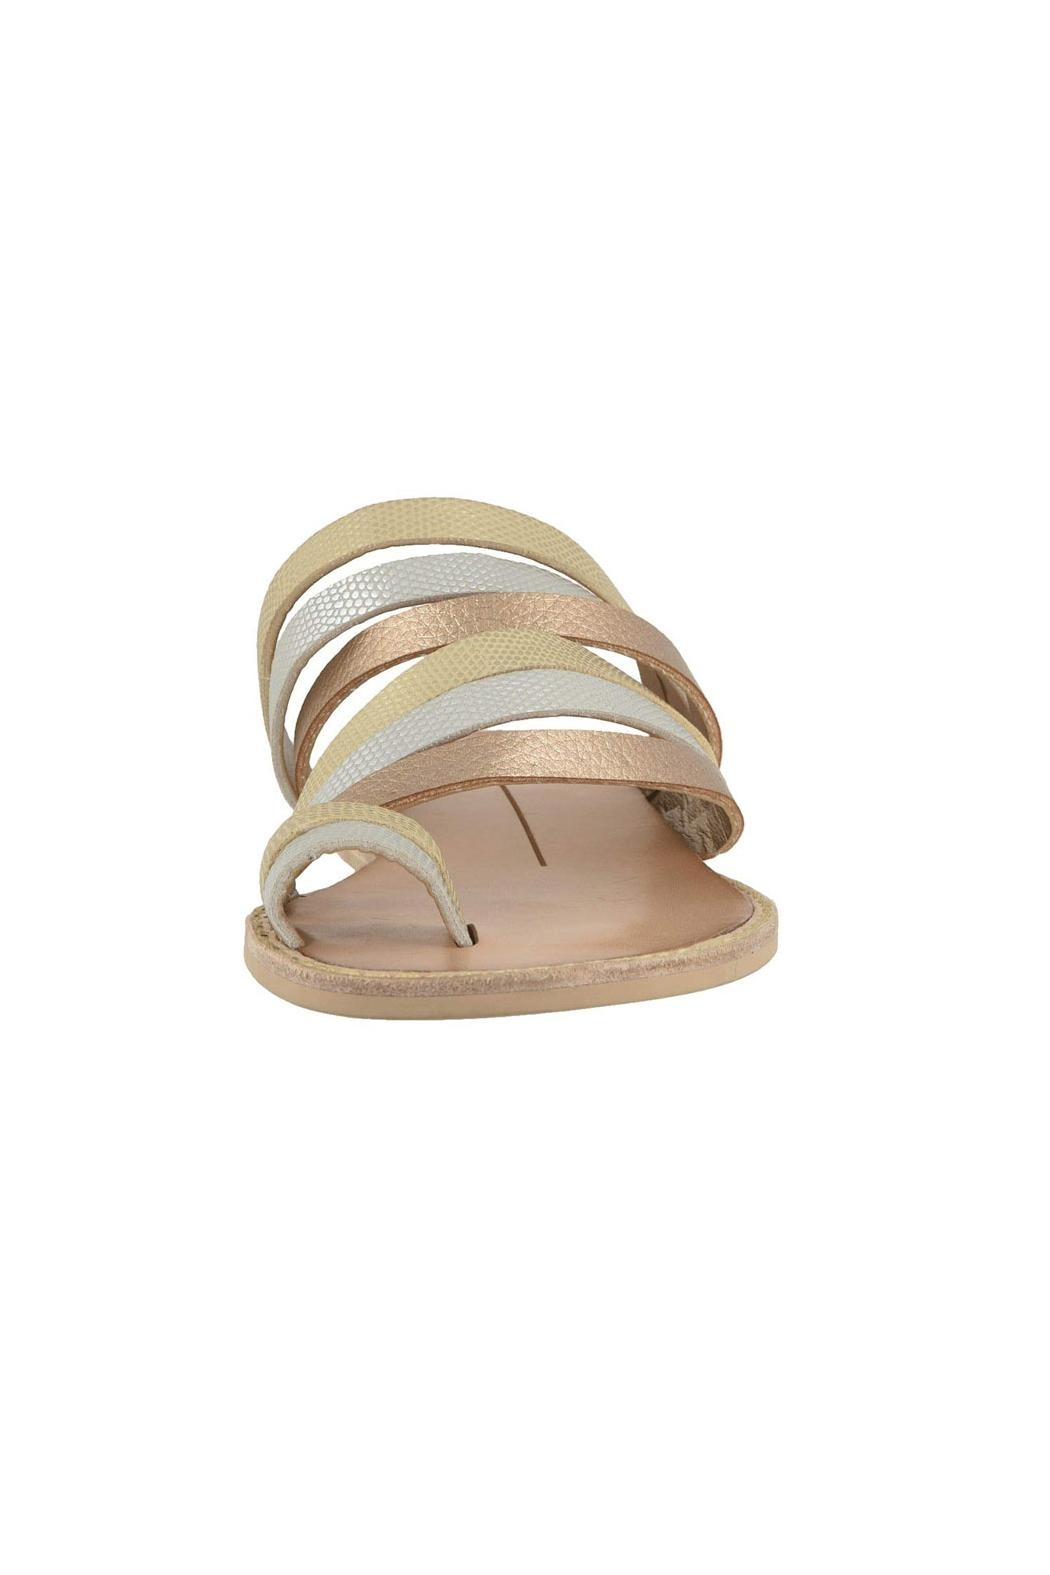 Dolce Vita Nelly Metallic Wedge - Front Full Image